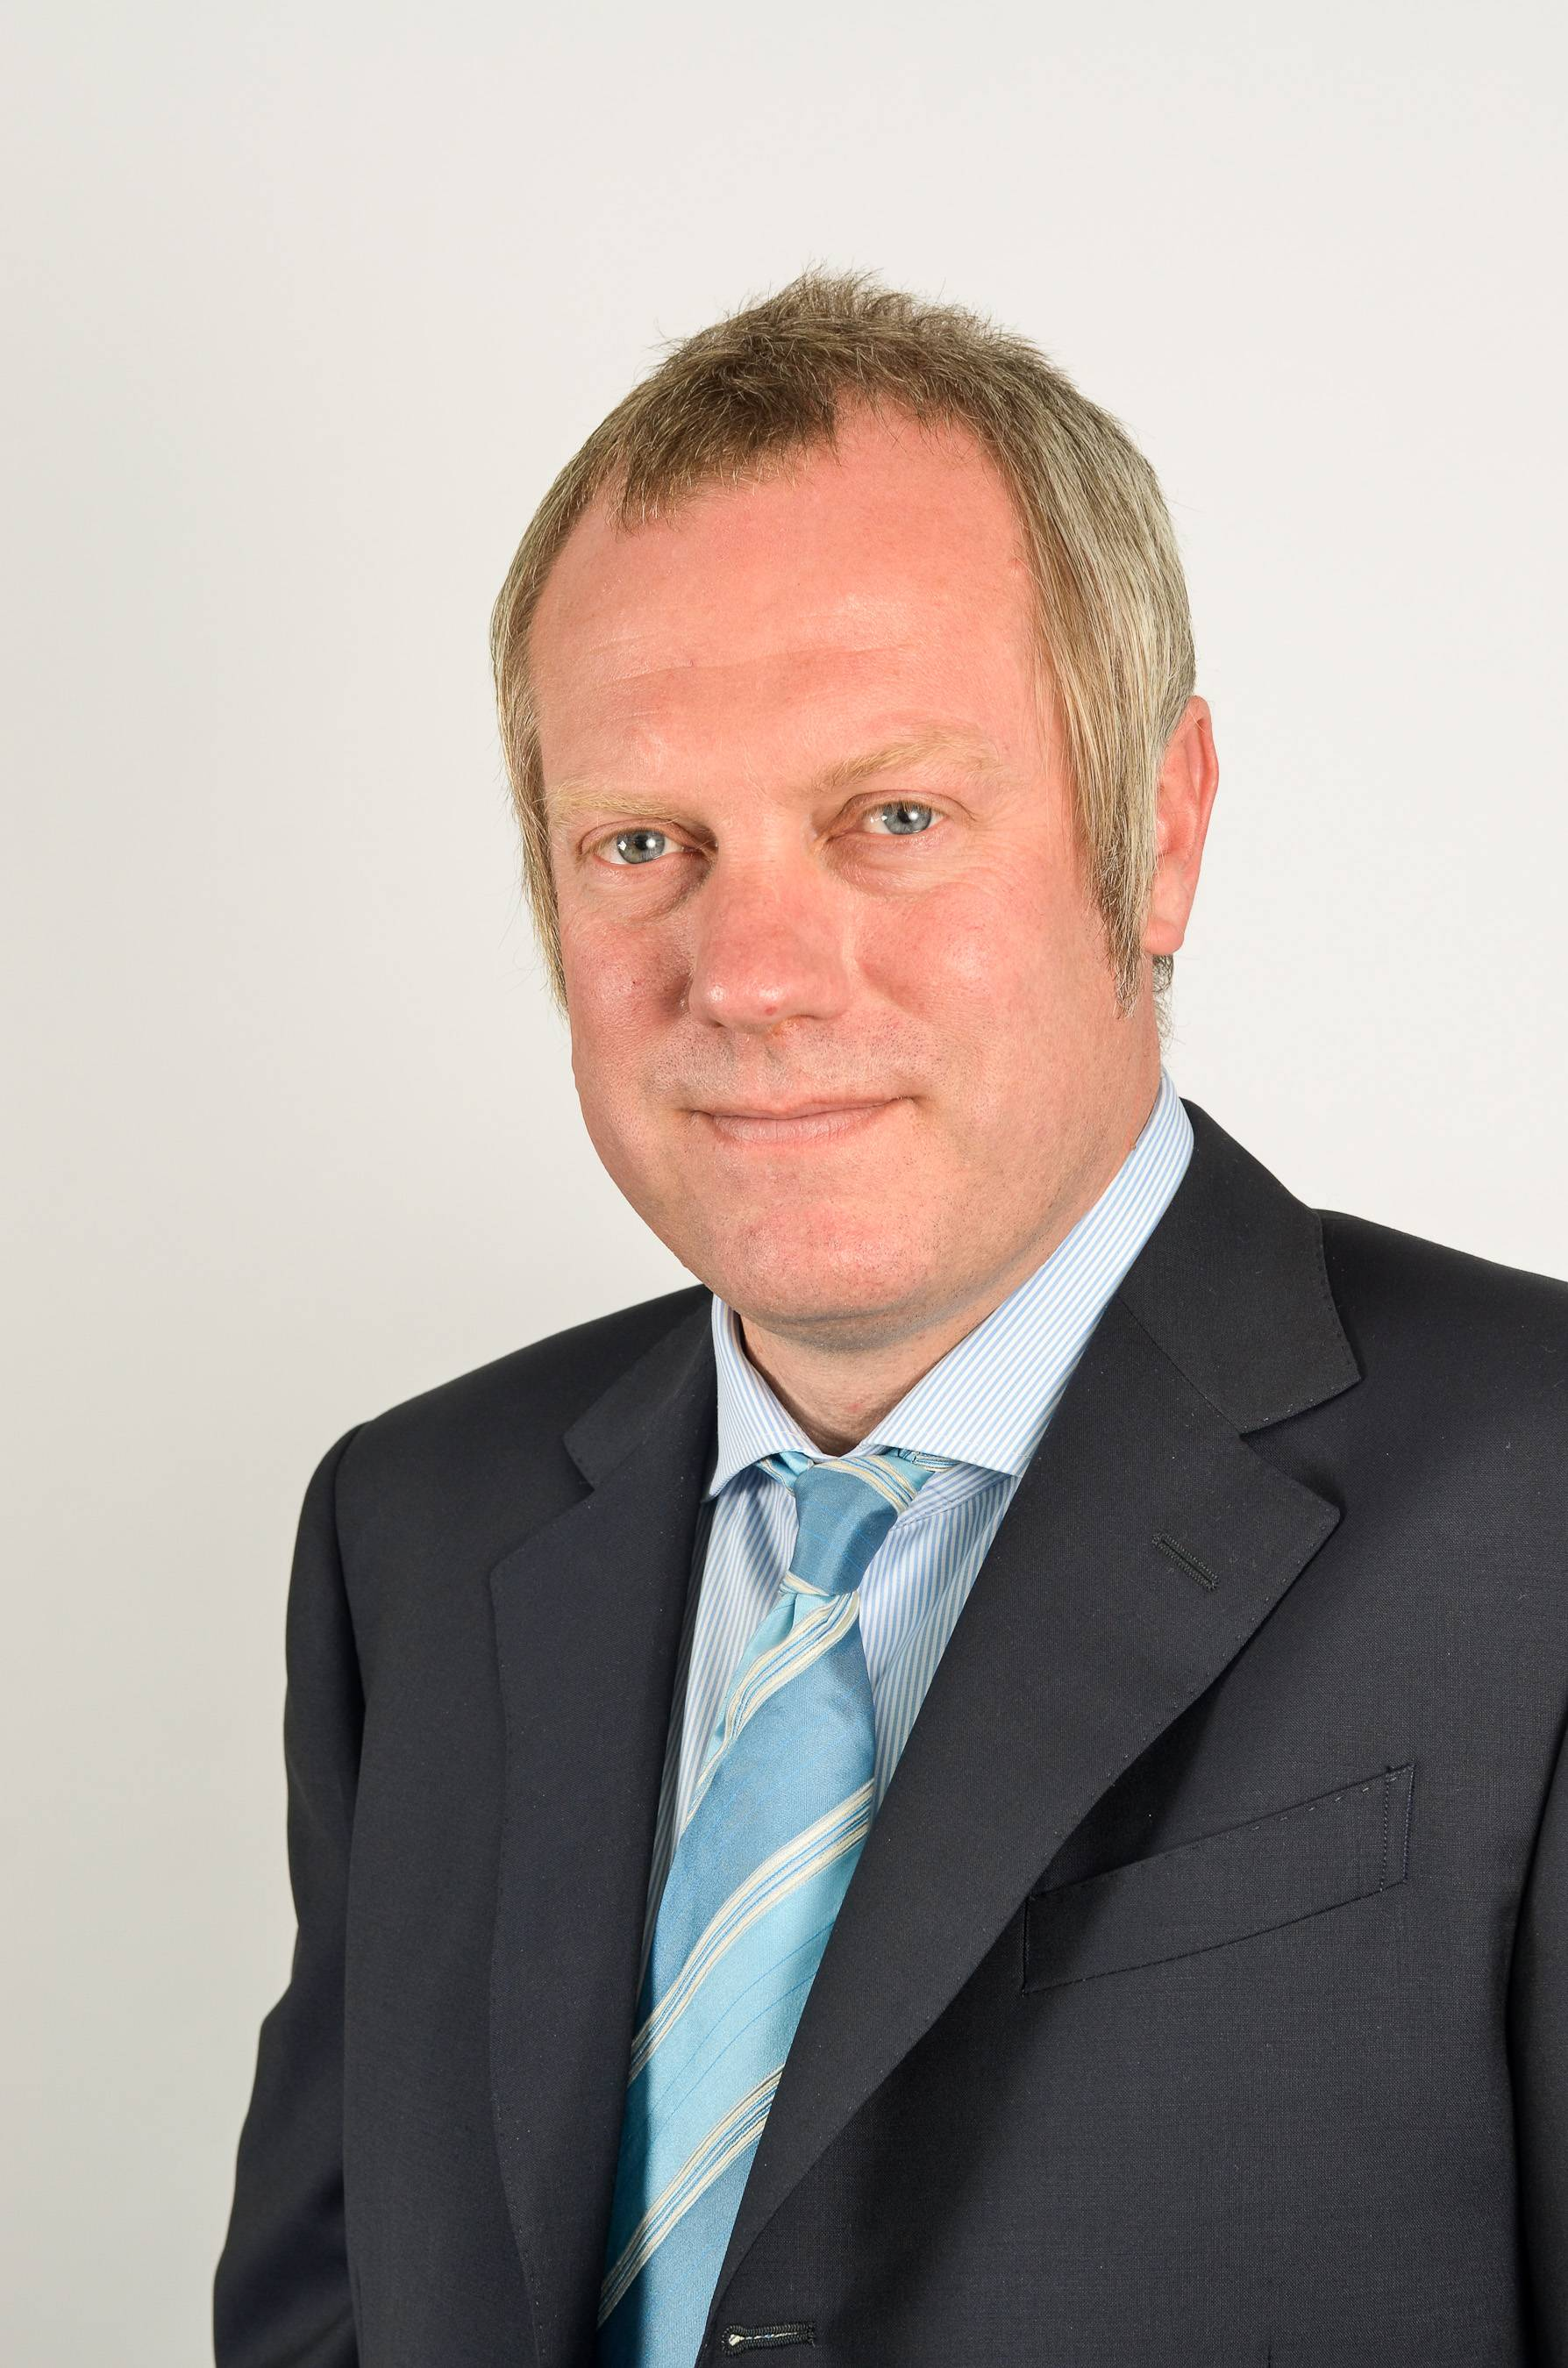 GroceryAid has announced that Barry Williams, chief customer officer at Asda, will be taking over as president of the GroceryAid Fundraising Committee in ... - Barry-Williams-ASDA